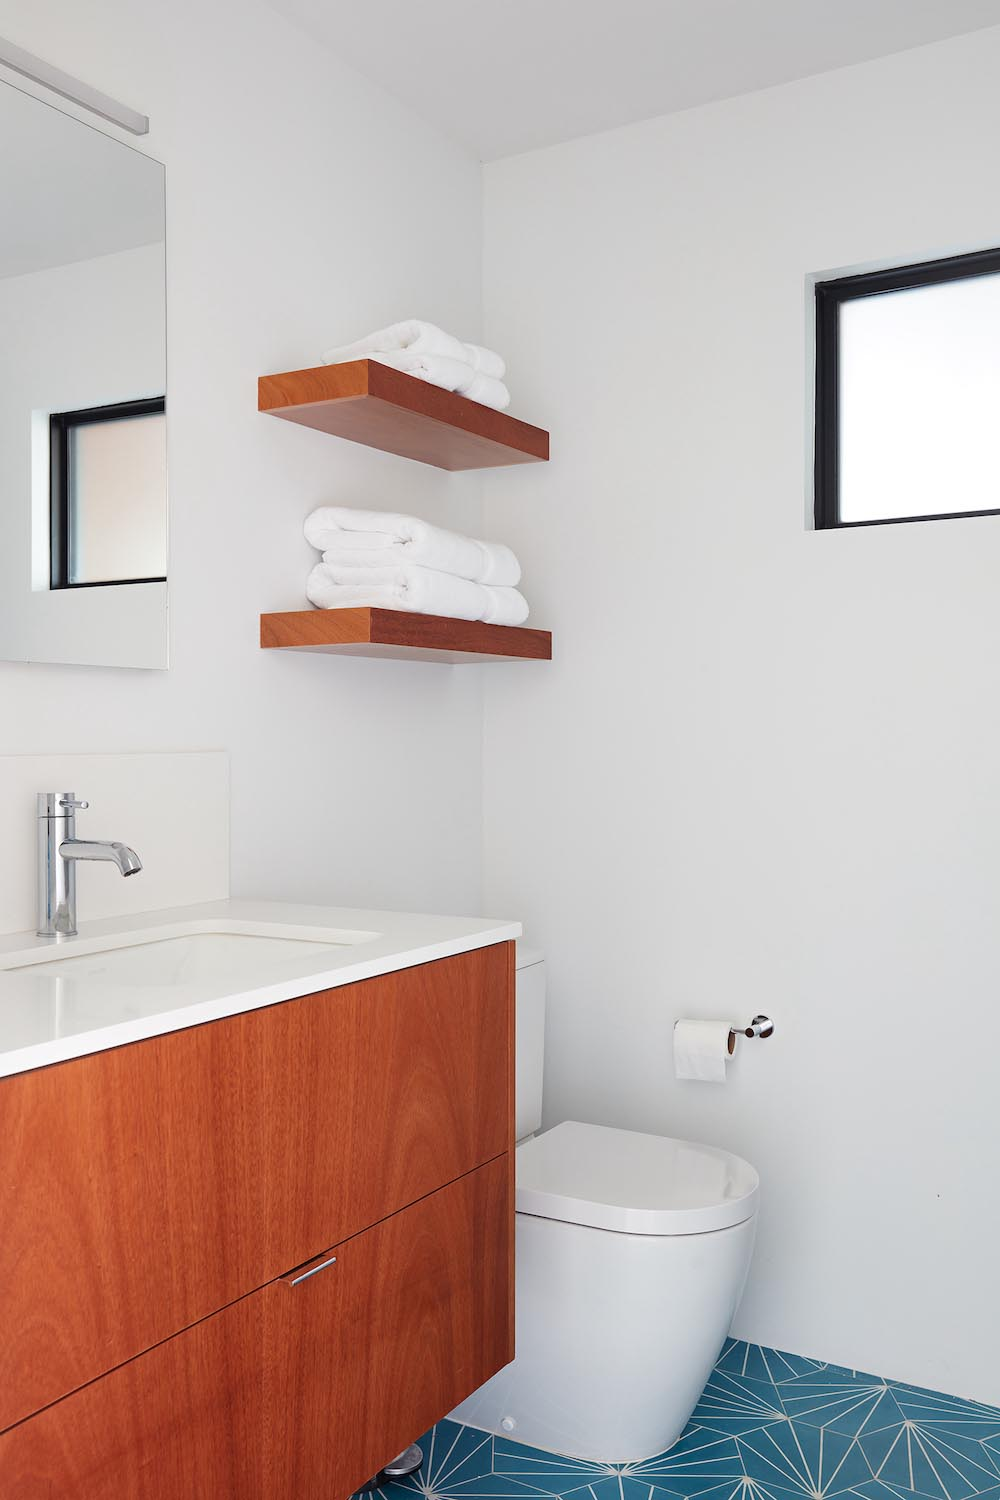 A modern white bathroom with blue starburst tiles and a wood vanity.